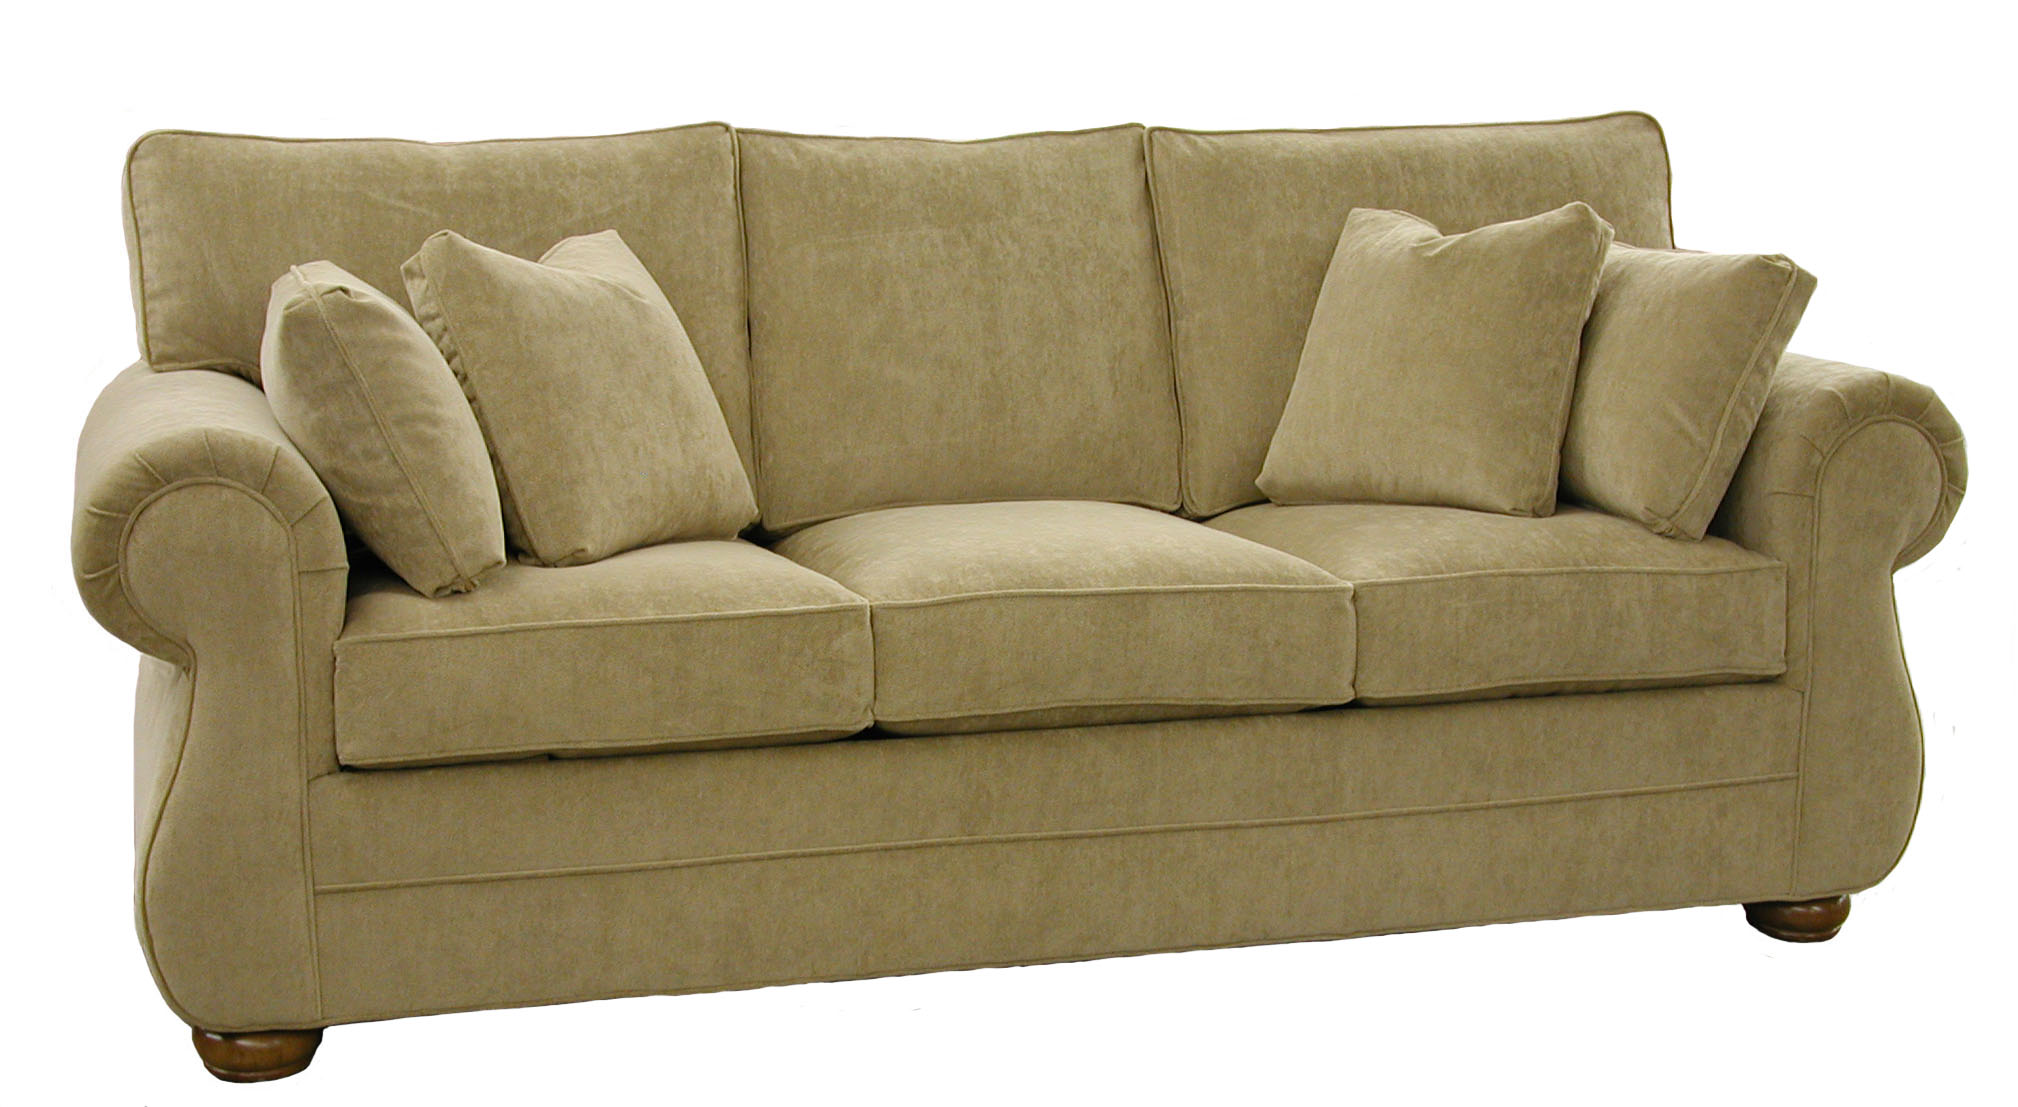 usa made sleeper sofa can i clean my leather with white vinegar kingsley queen carolina chair american